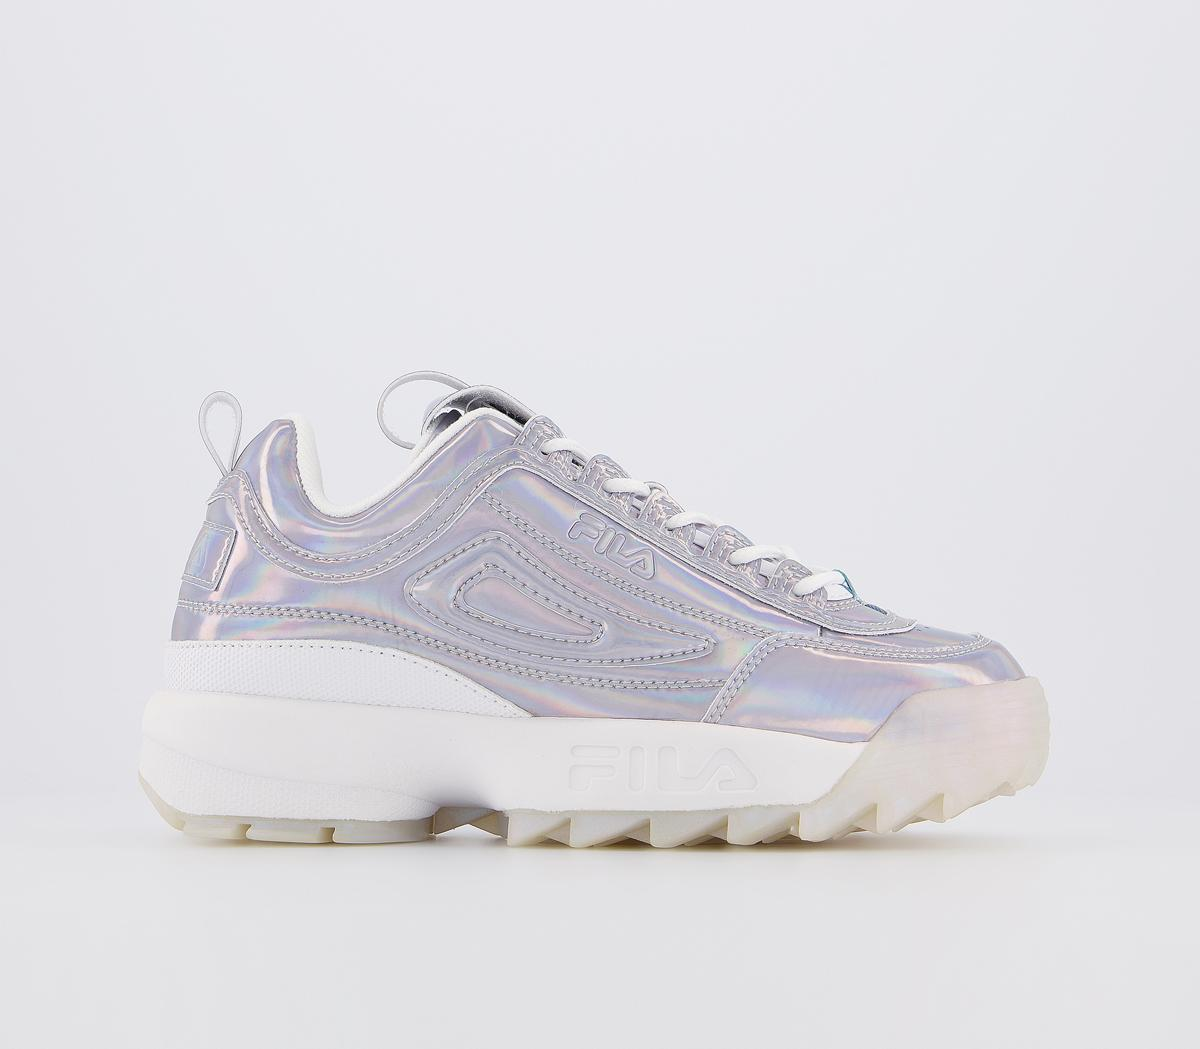 Womens Fila Trainers Sale - Get up to